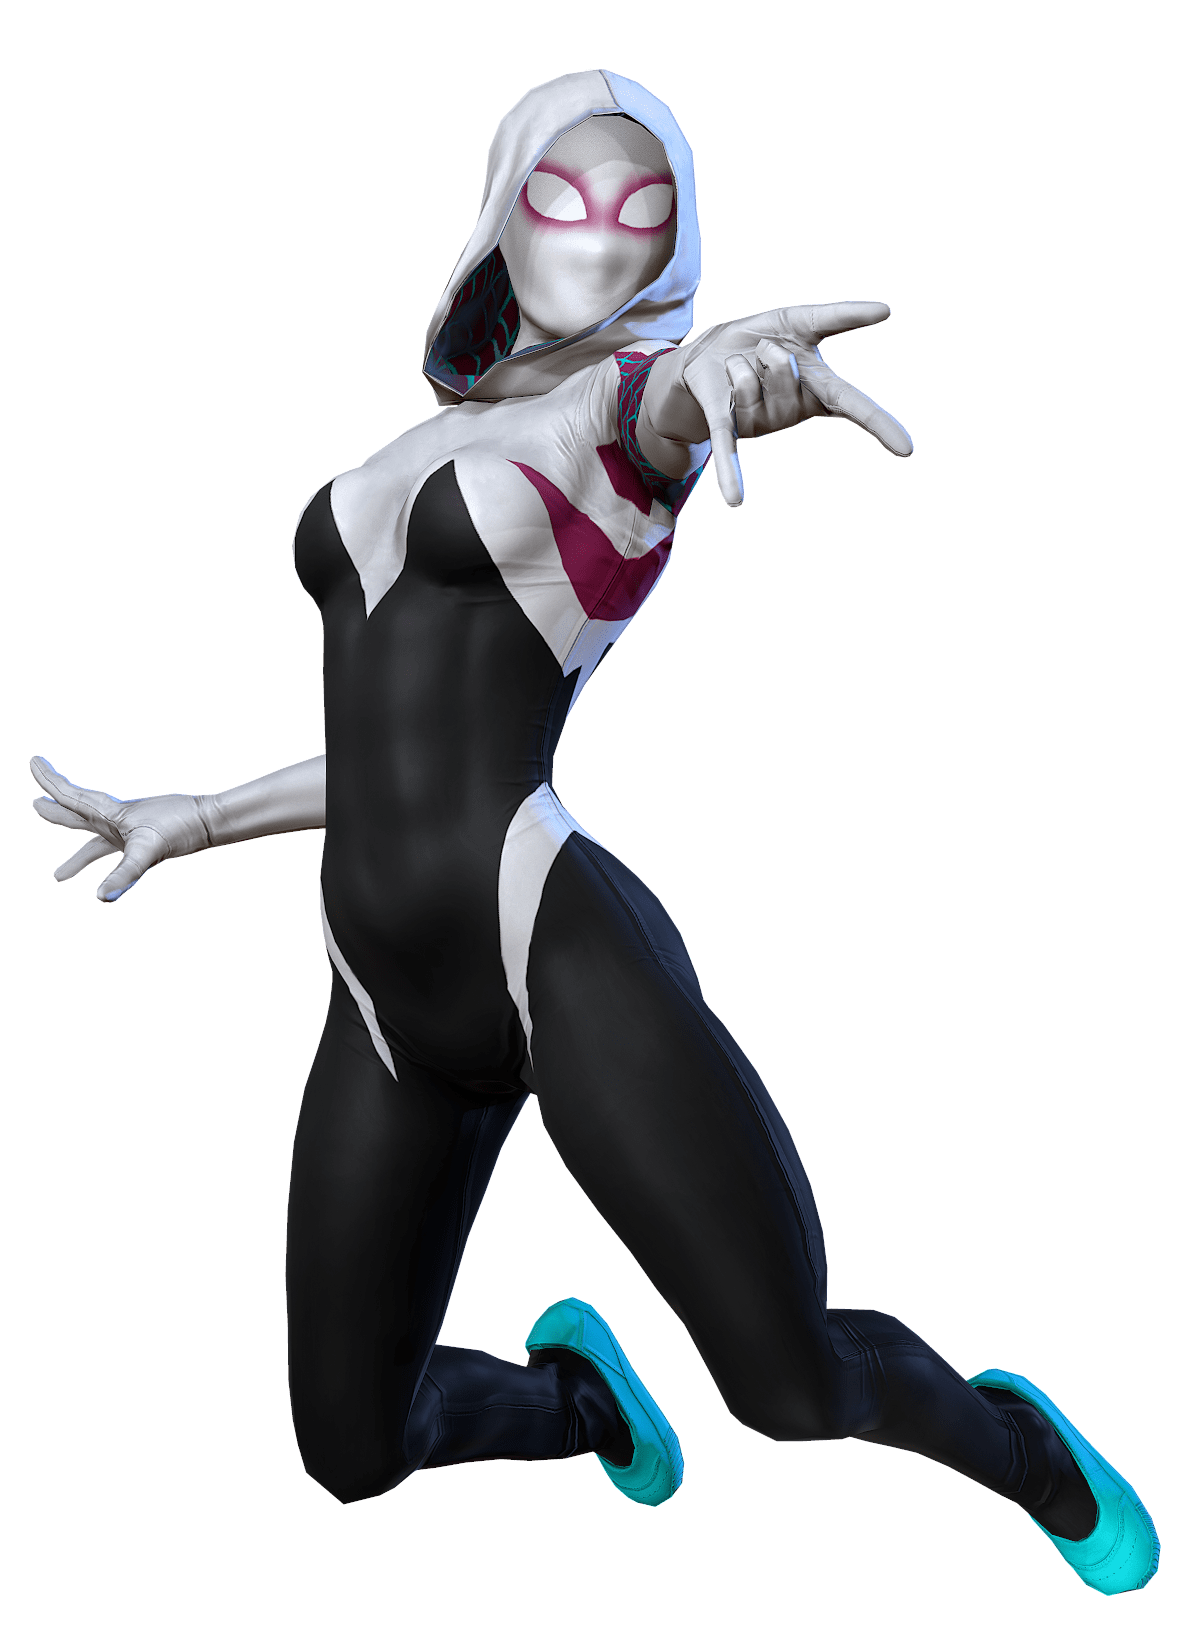 Spider Gwen hot pics